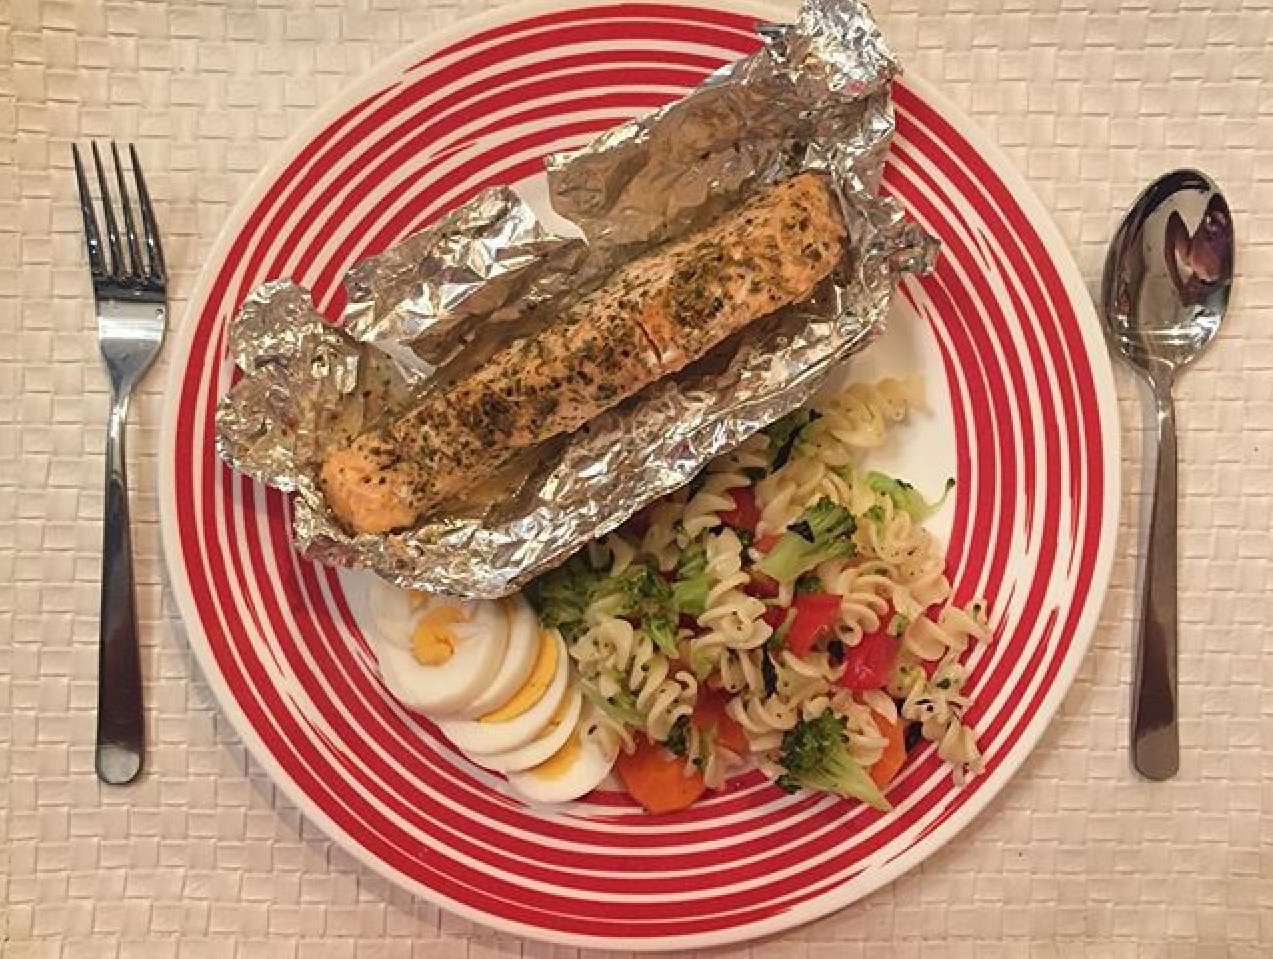 Baked Salmon and Pasta Salad